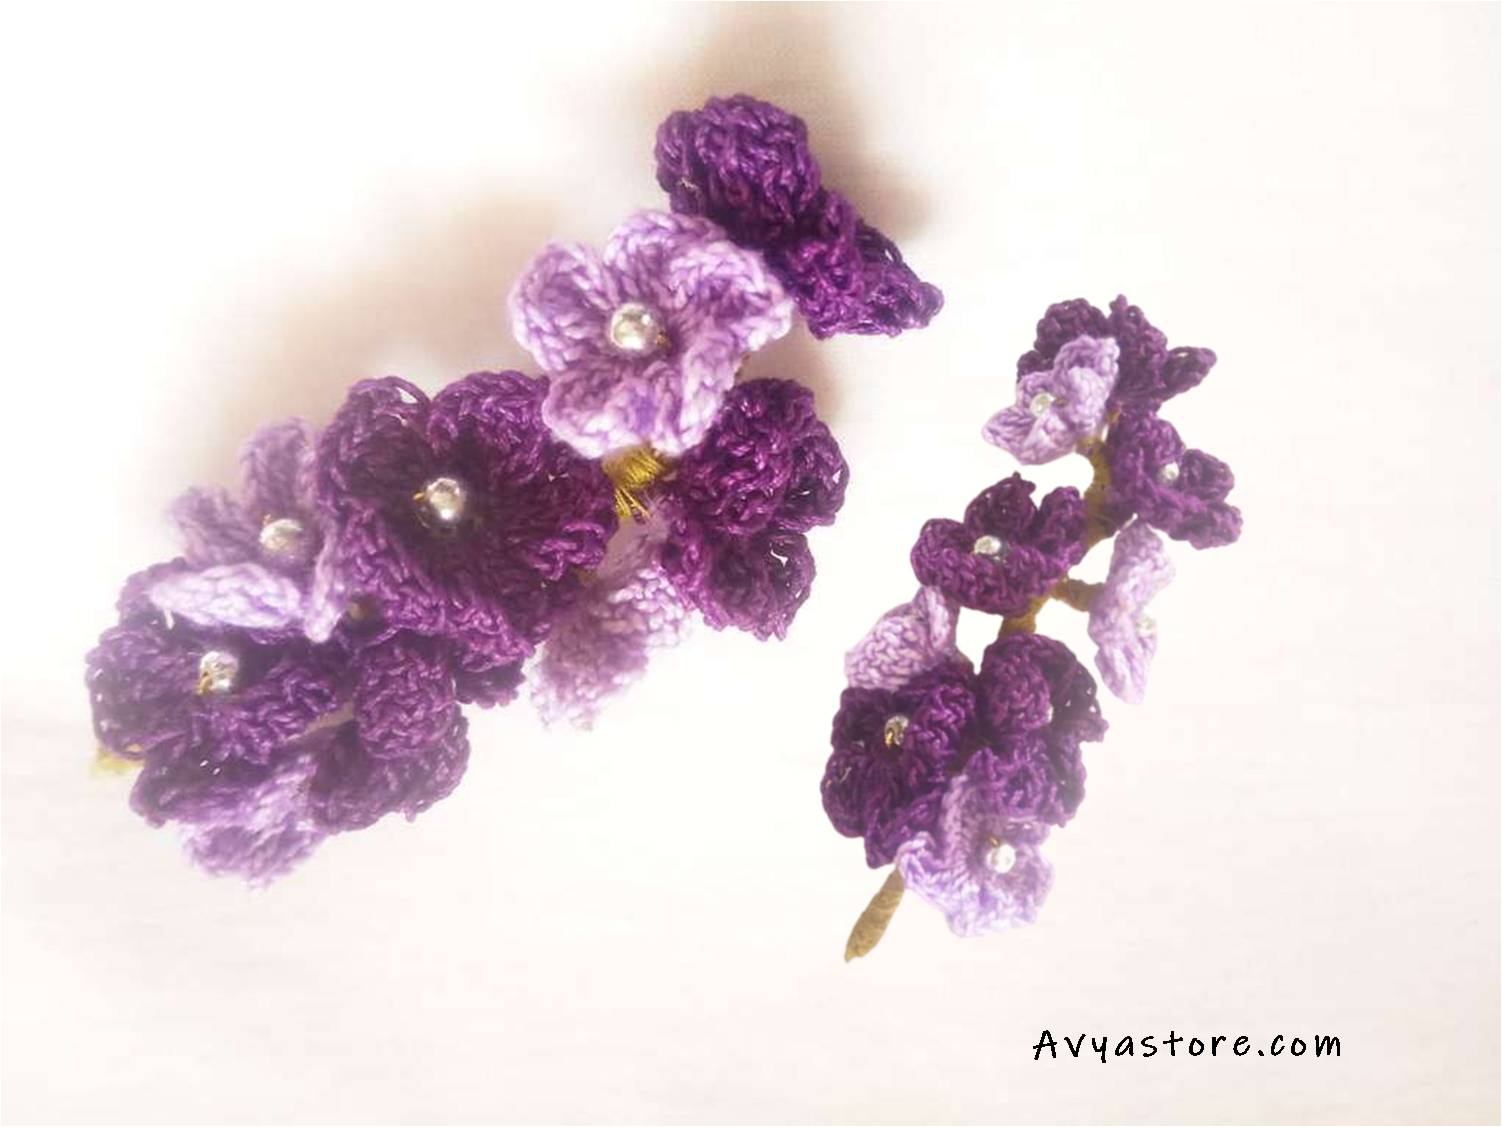 Avyastore_How to Crochet Verbena Flowers – Free Tutorial